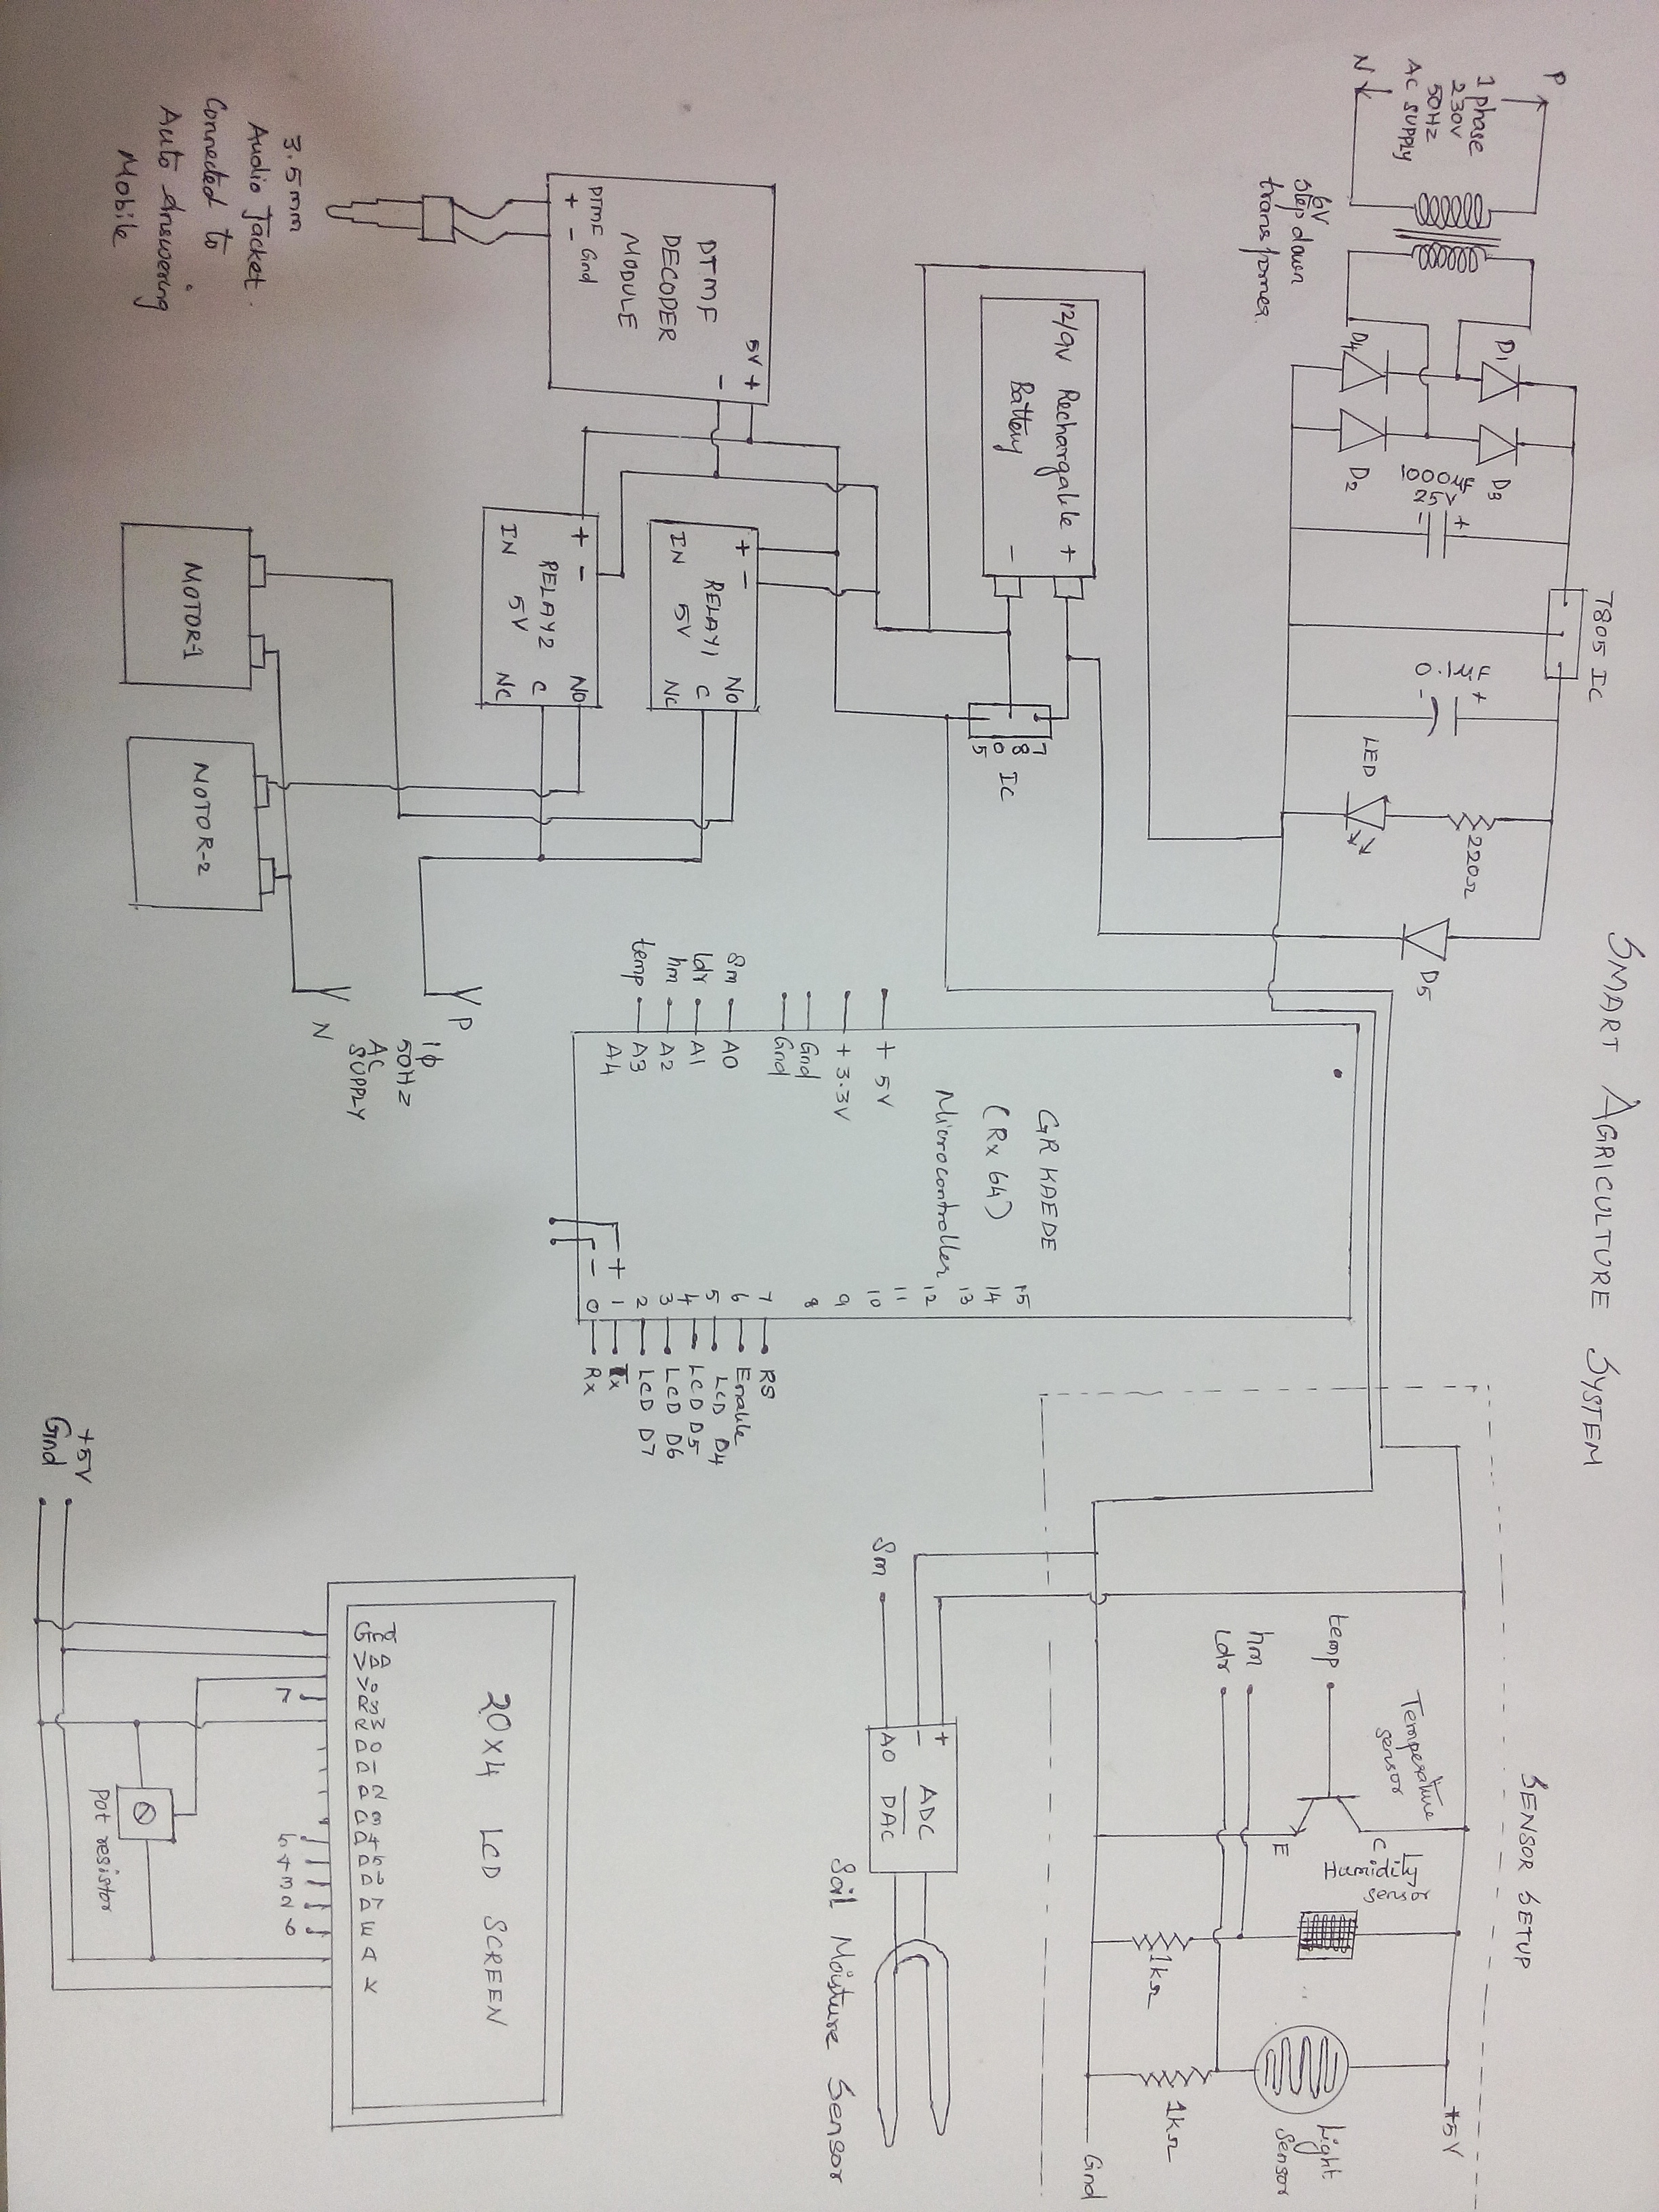 Smart Agriculture System With Iot Dtmf Based Fm Remote Control Circuit Diagram Centre Schematic20diagram